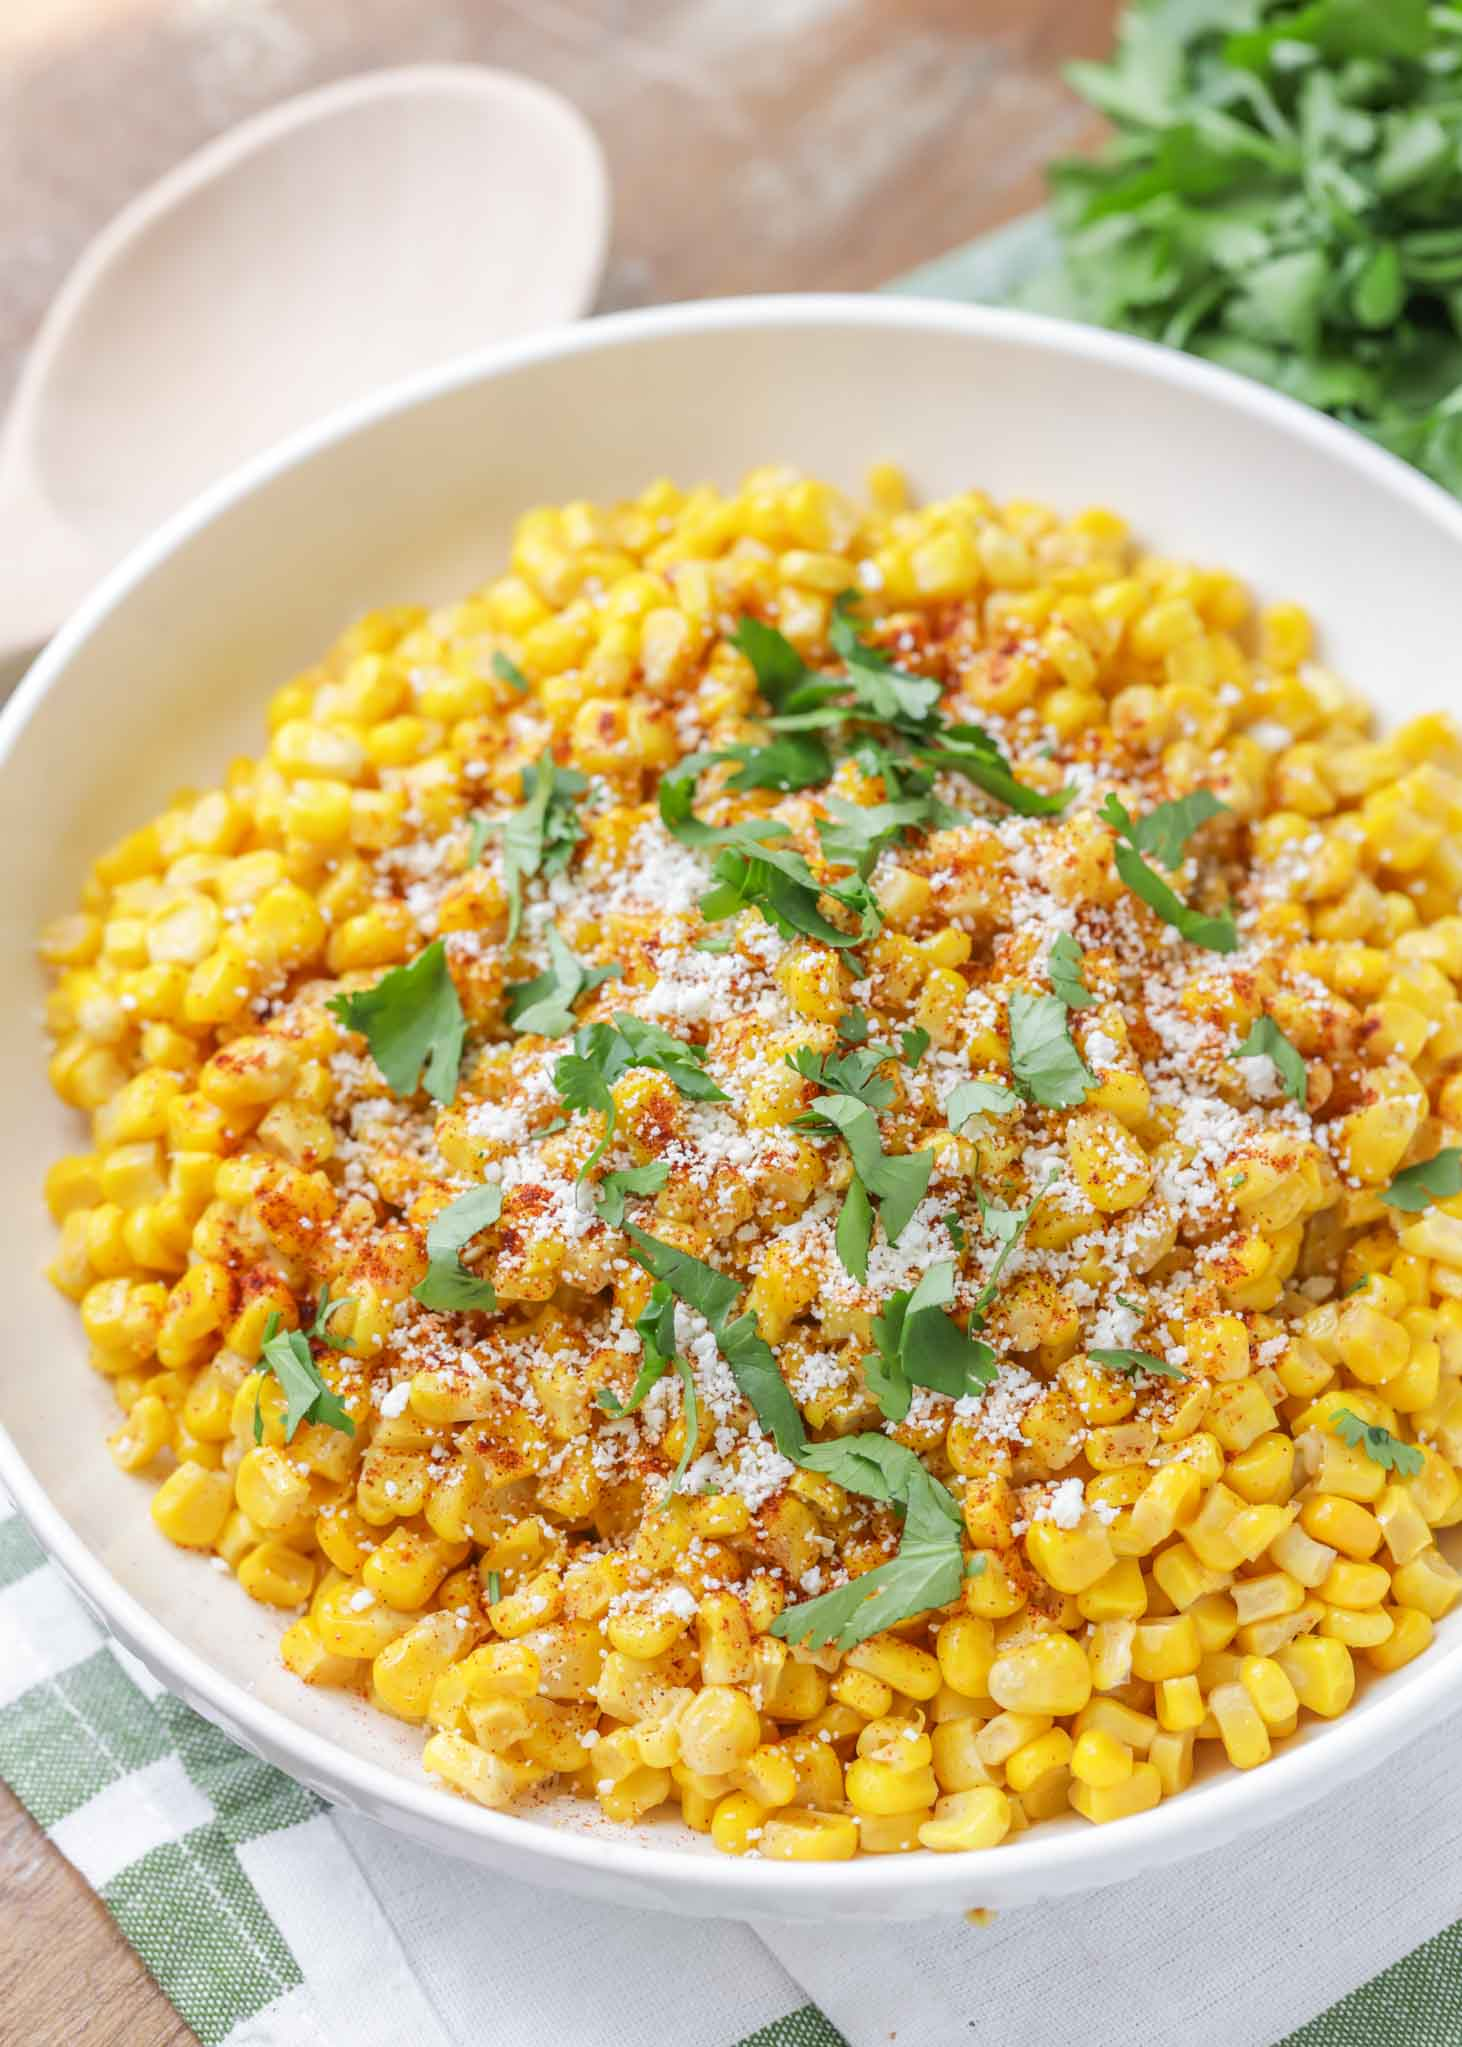 Mexican street corn off the cob in a white bowl